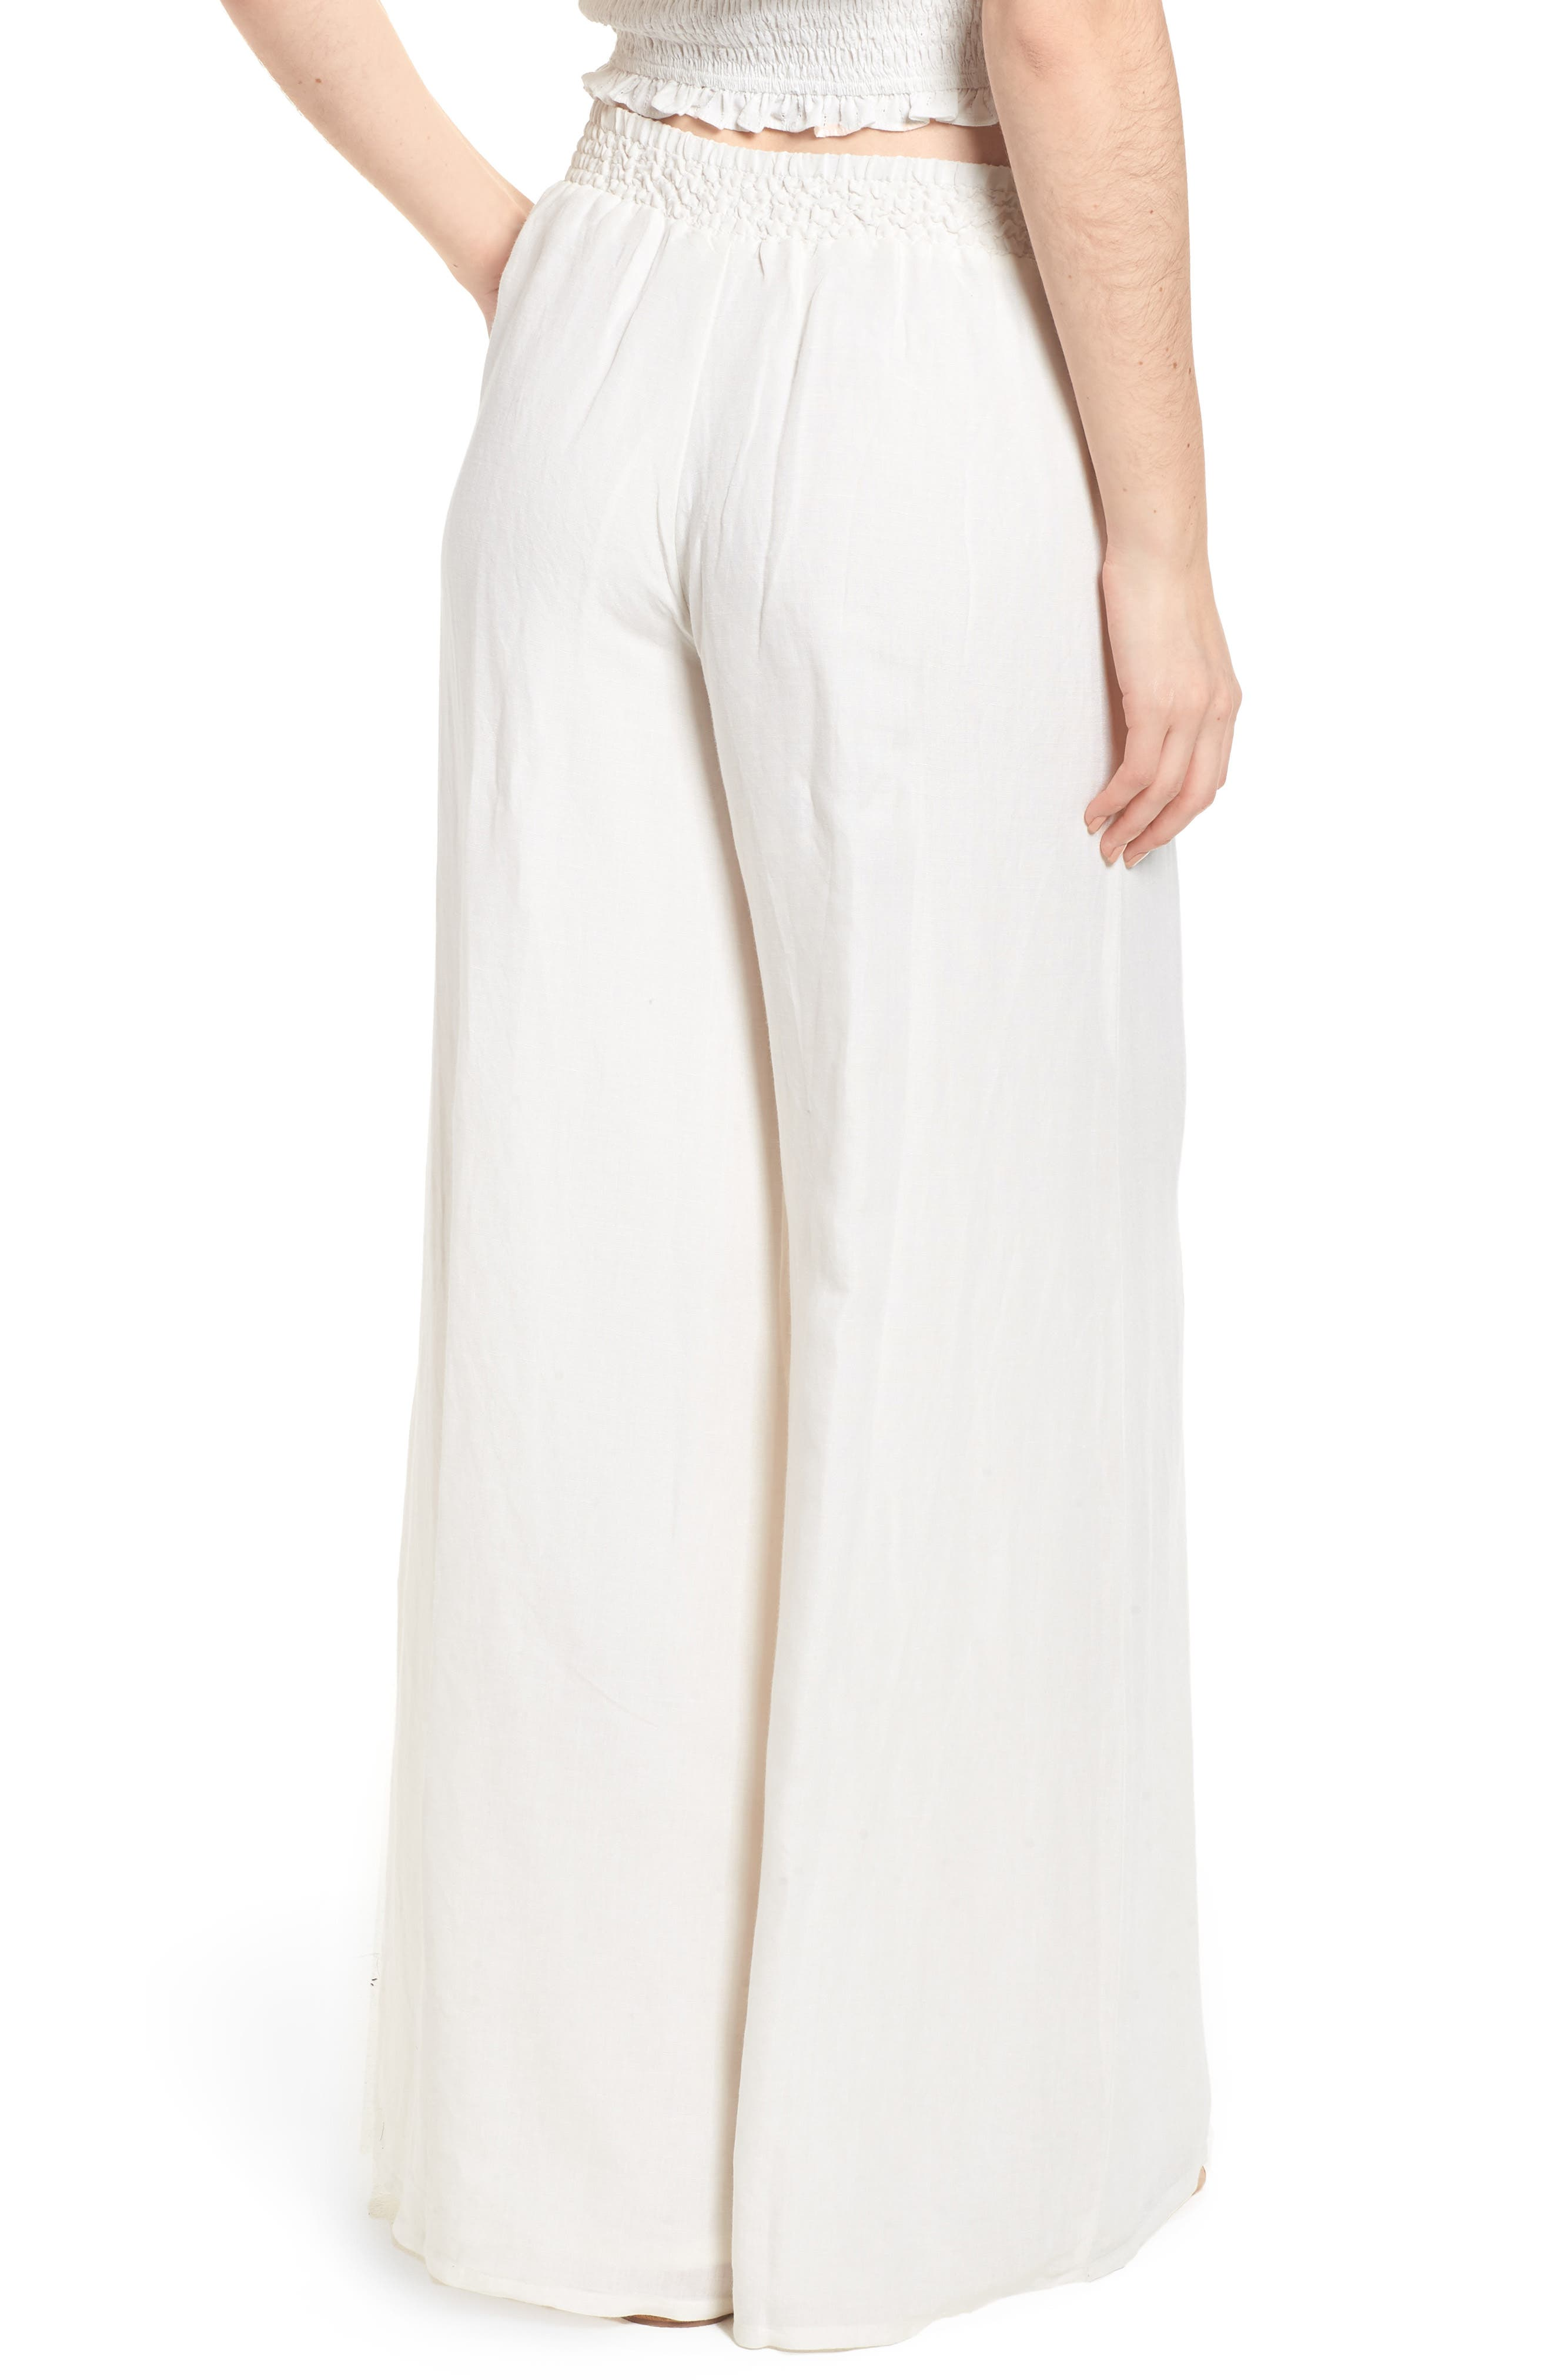 High Roads Smocked Wide Leg Pants,                             Alternate thumbnail 2, color,                             Cool Whip